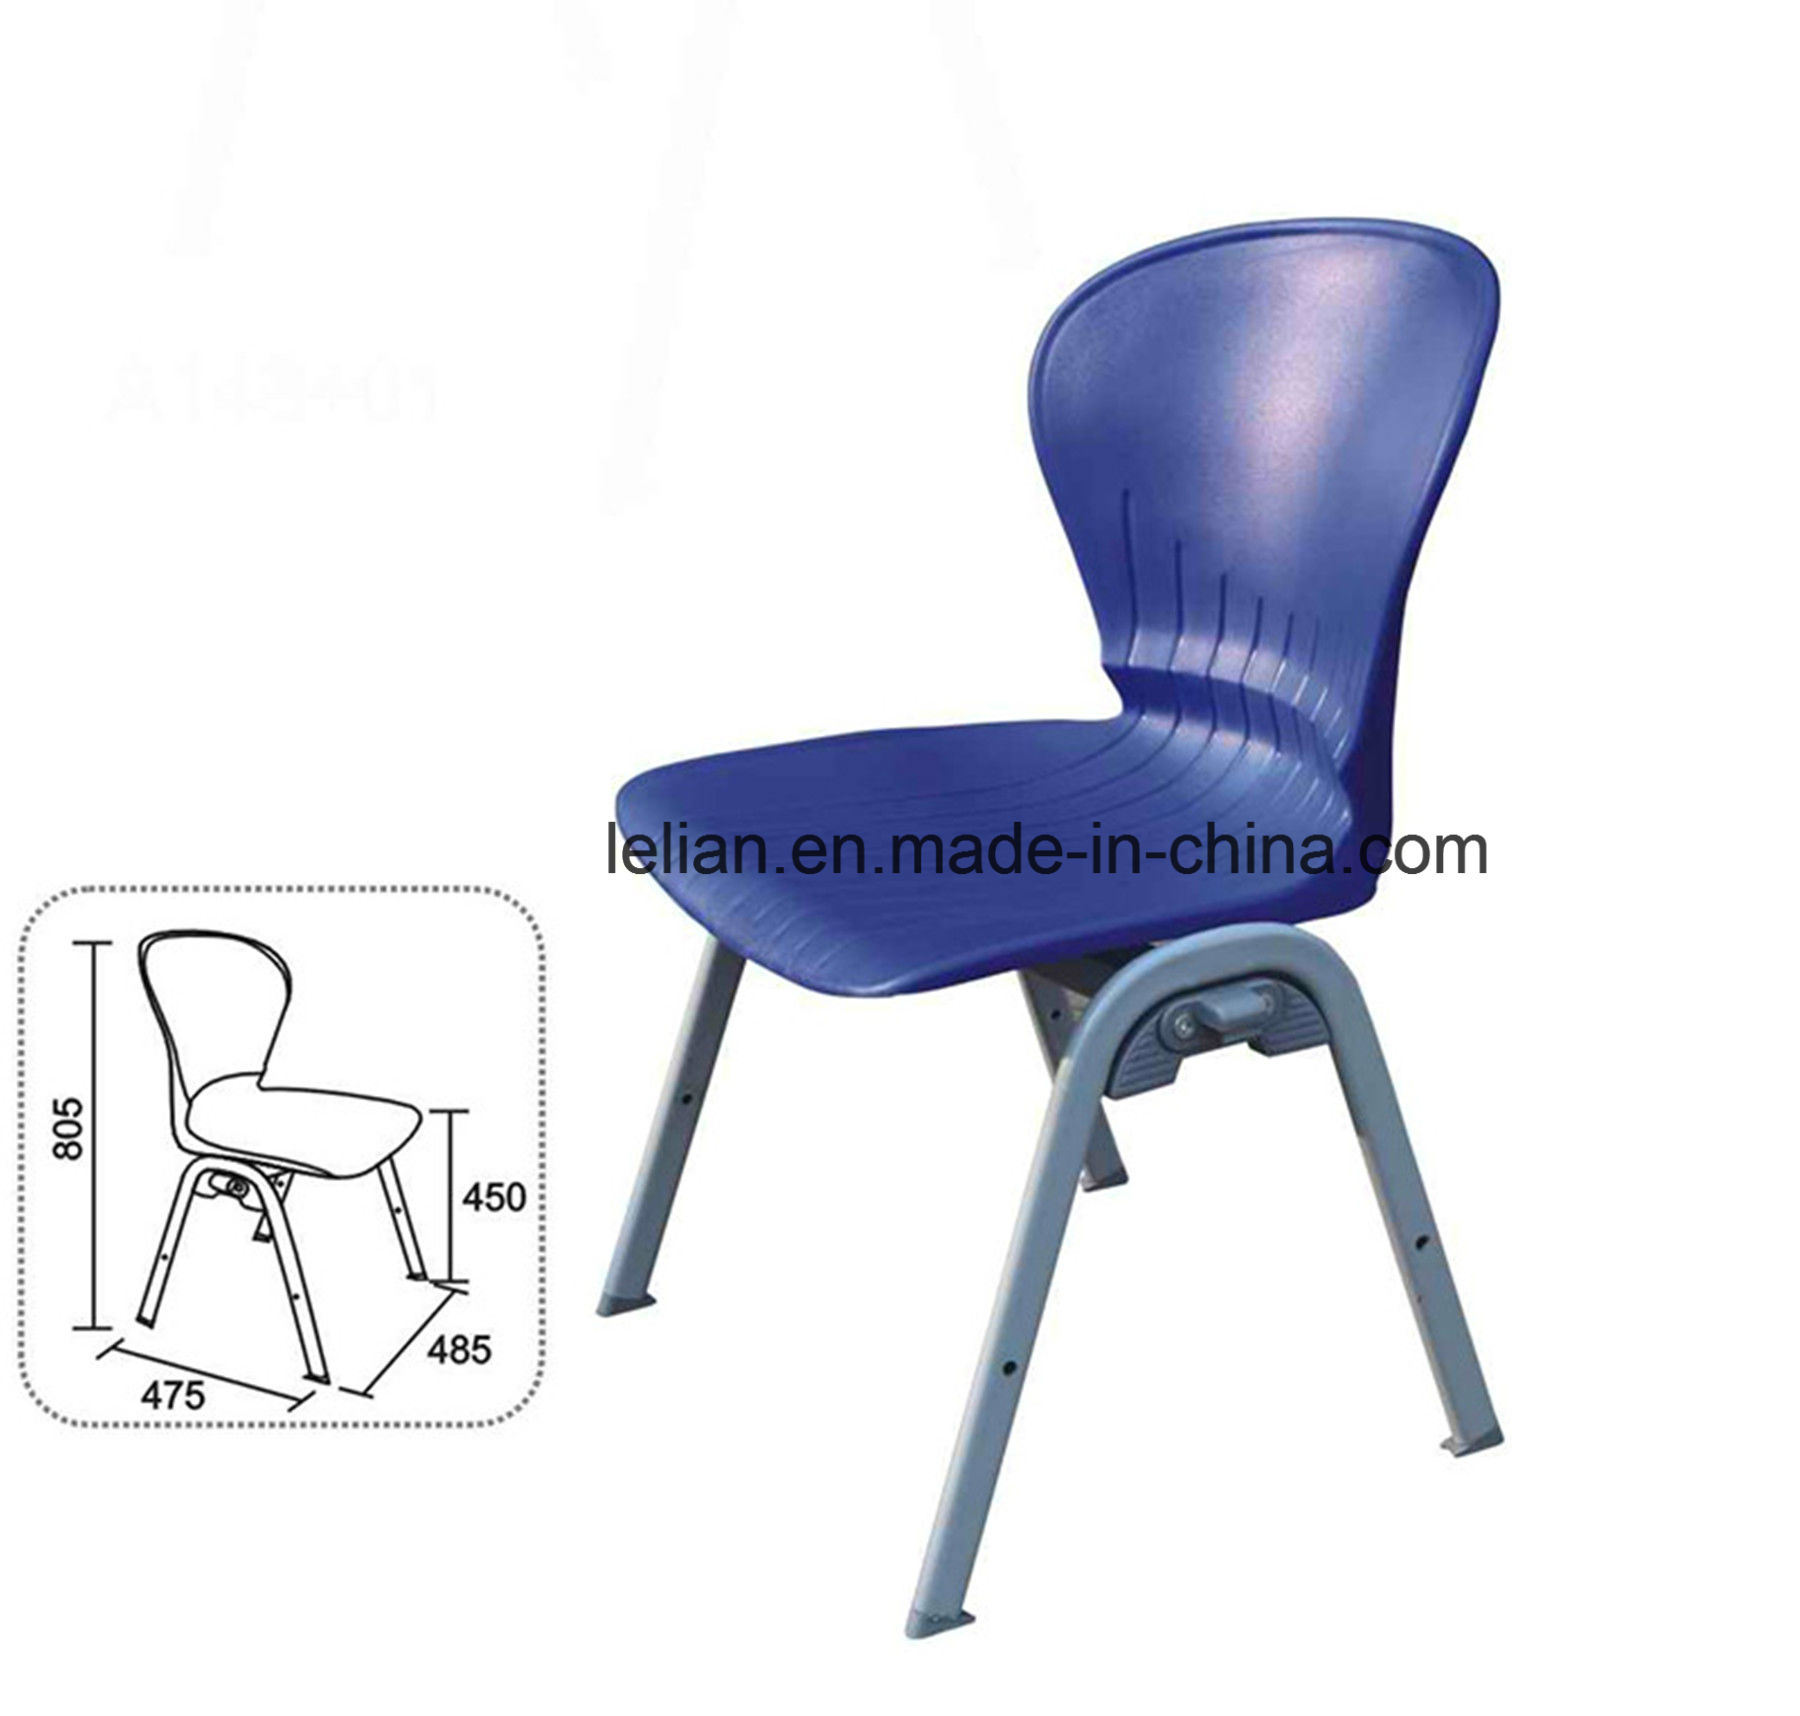 Hercules Series 551 Lb. Capacity Blue Stack Chair (LL-0008)